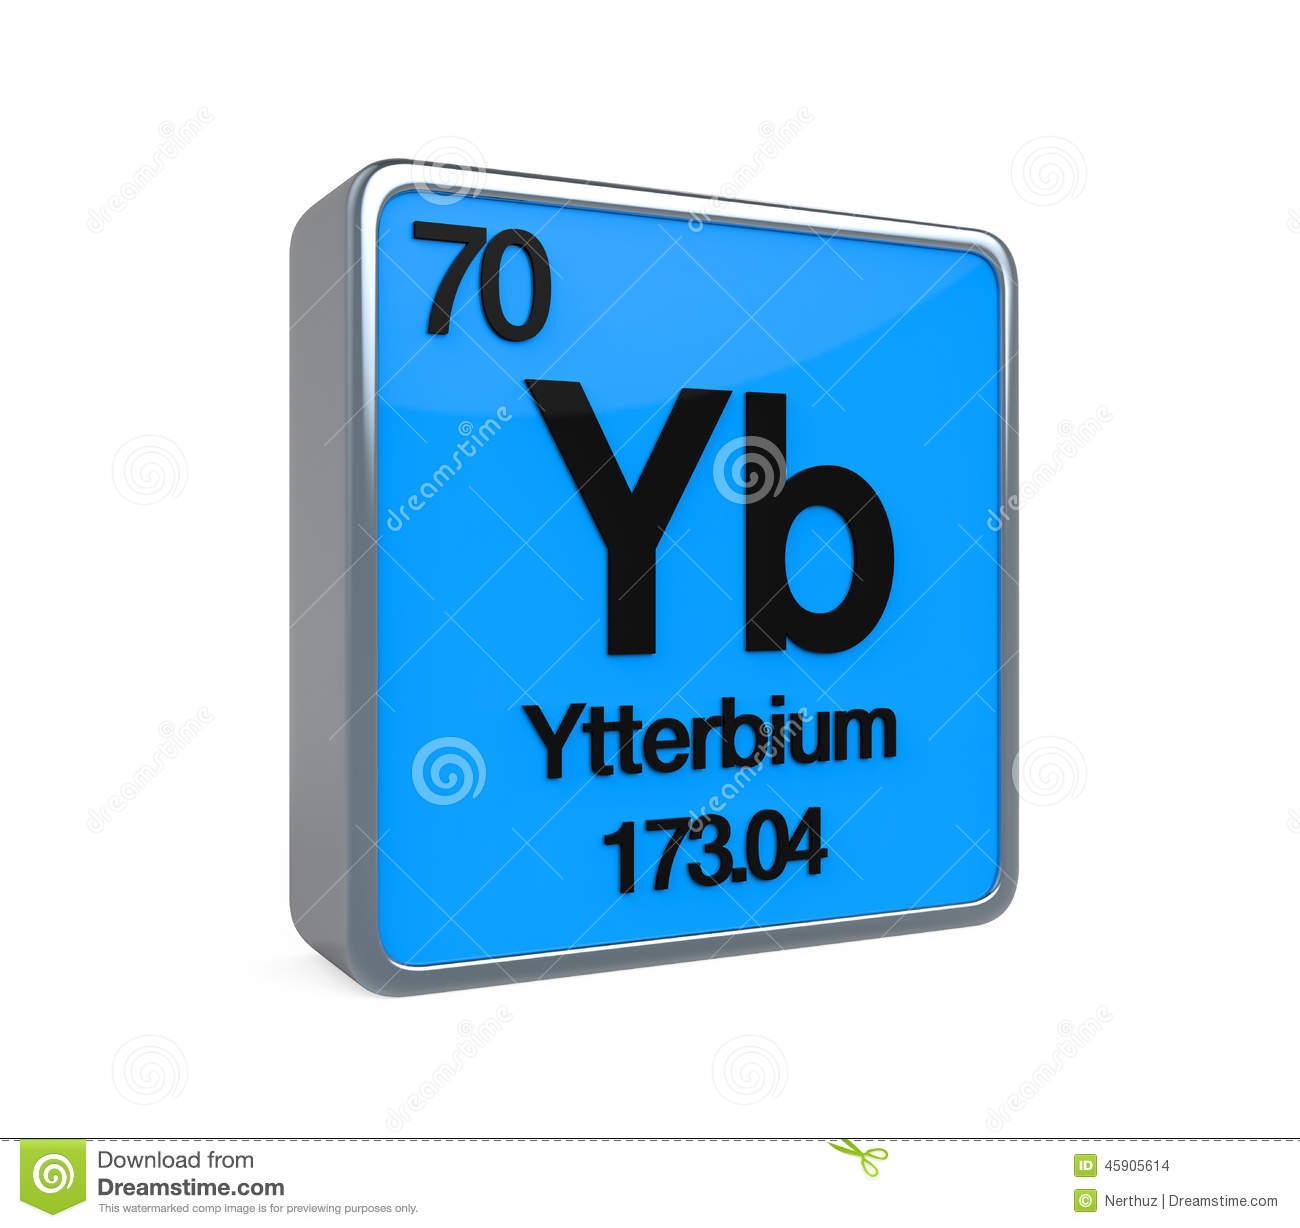 Ytterbium element periodic table stock illustration image 45905614 ytterbium element periodic table urtaz Gallery